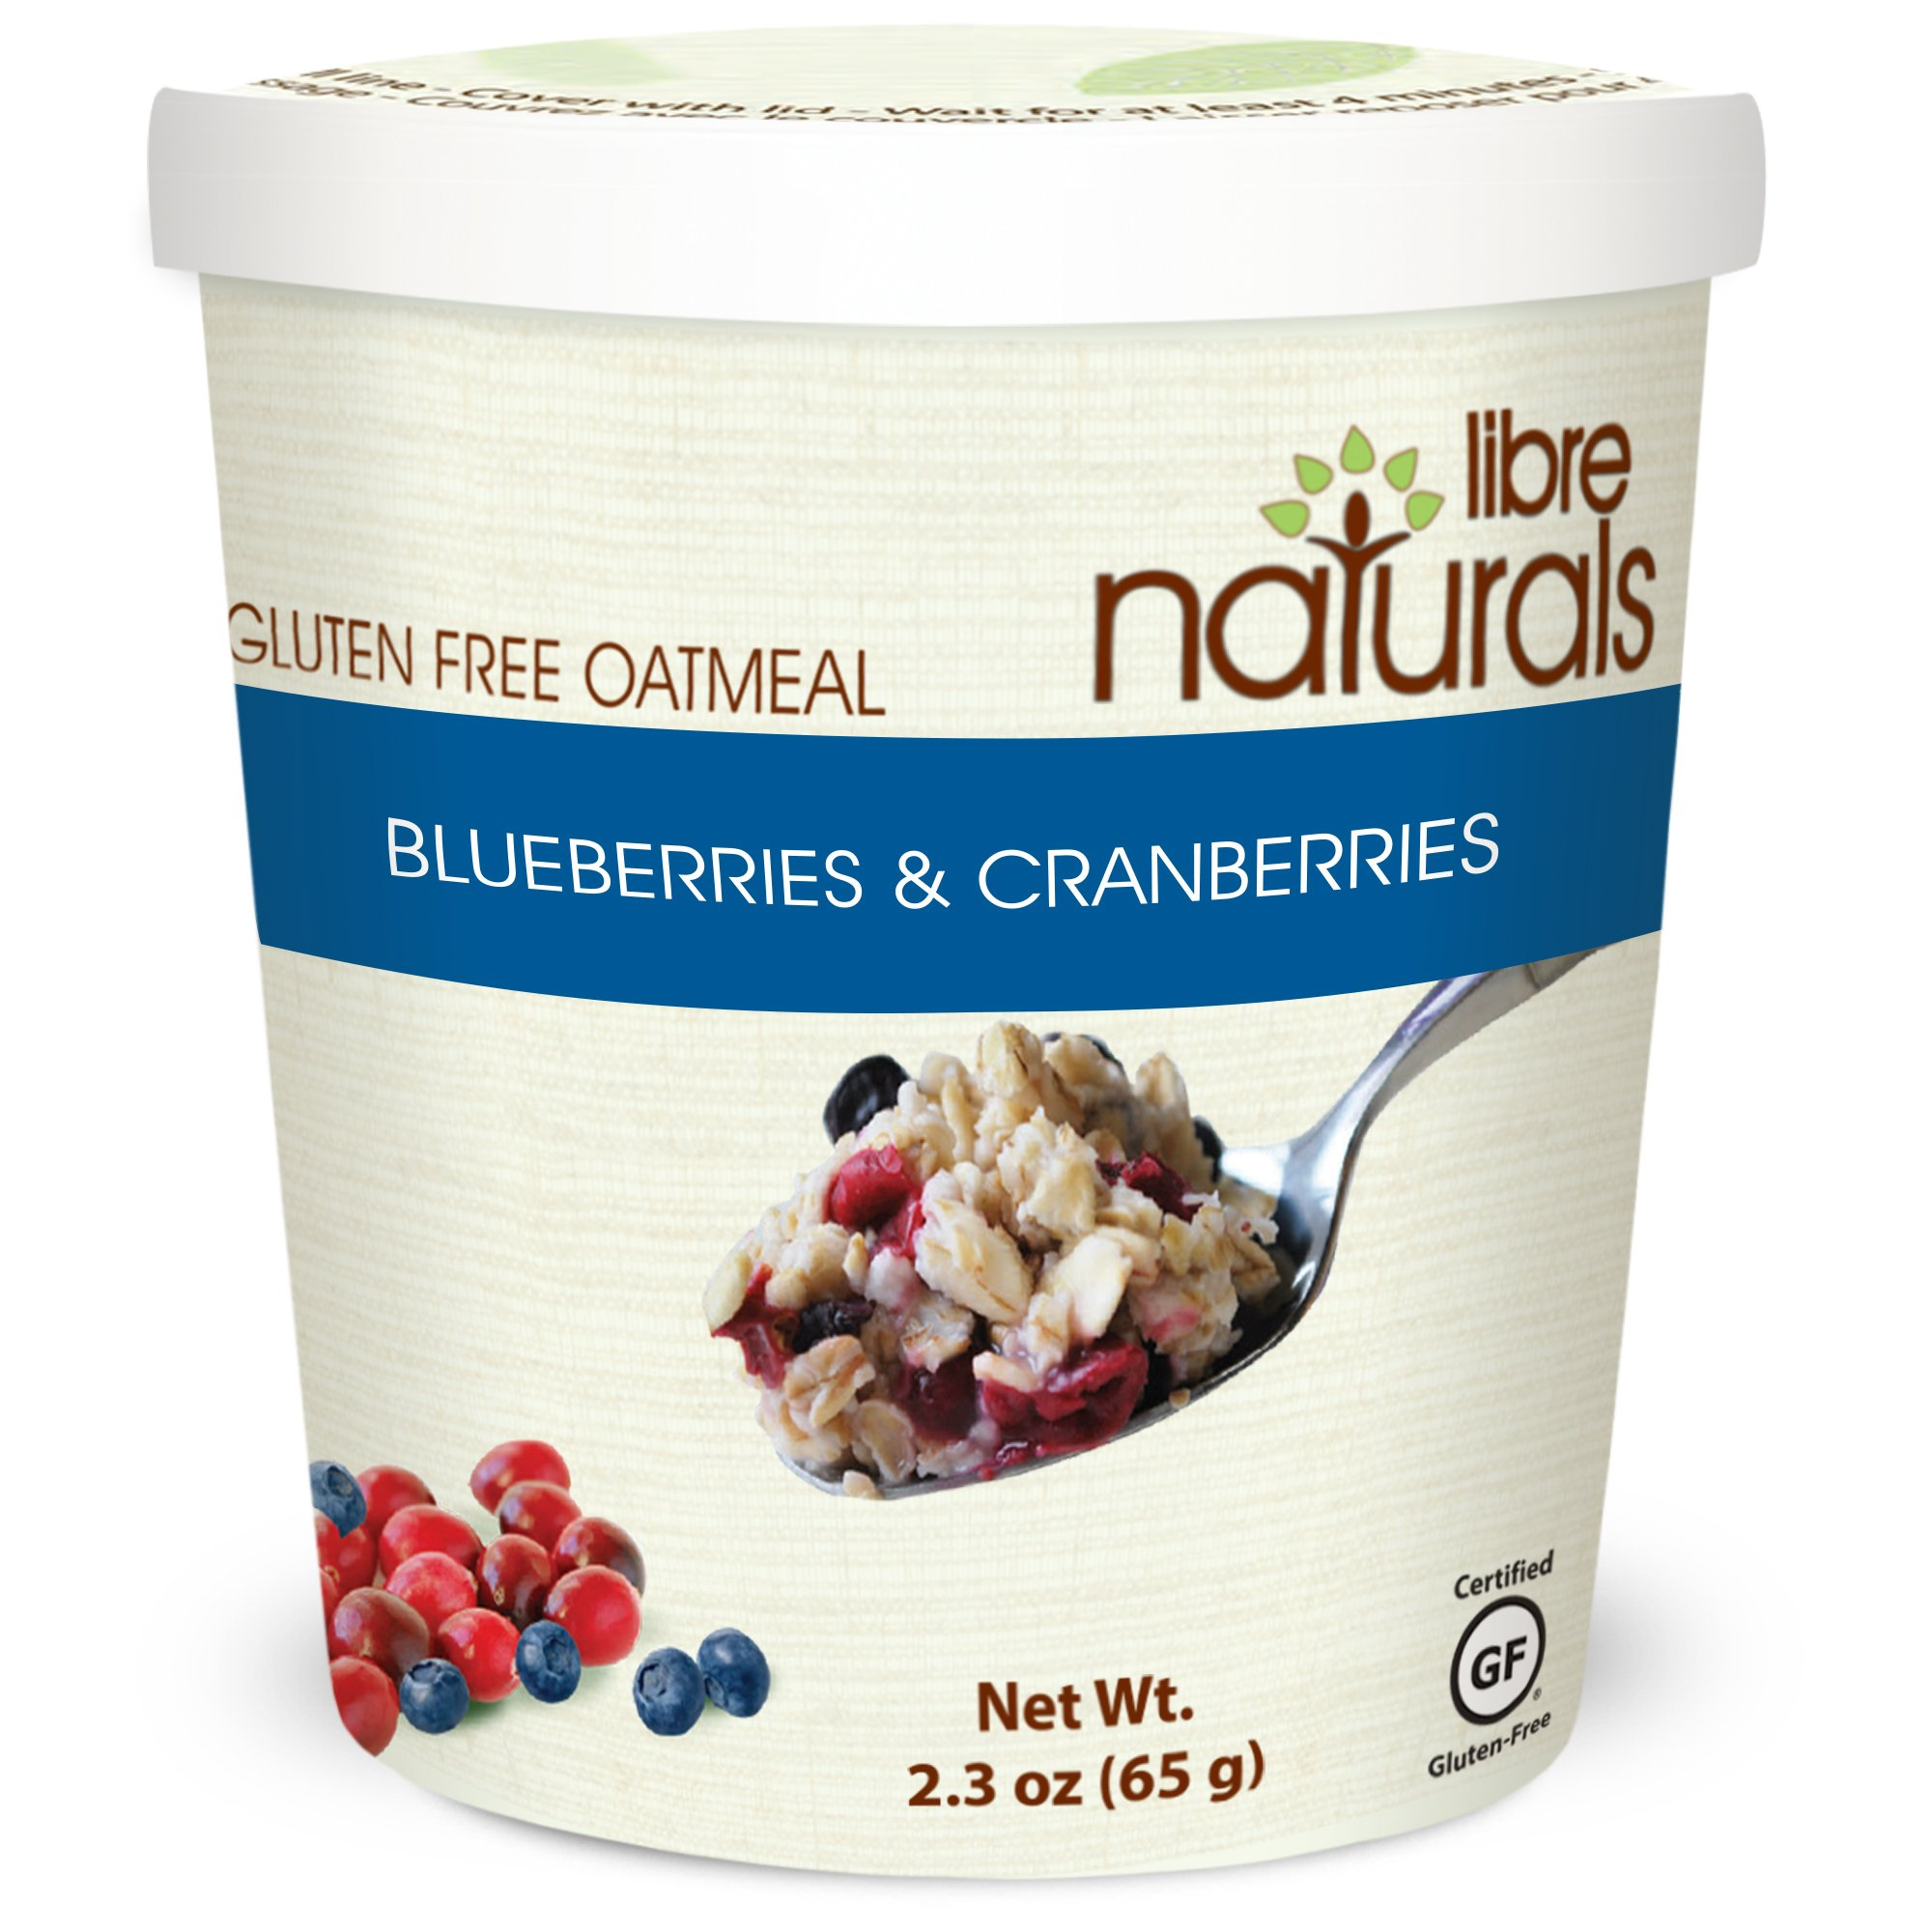 Nut Free, Gluten Free >> Blueberries and Cranberries Oatmeal Cup by Libre Naturals, 2.3 oz/65 gram, Case of 12